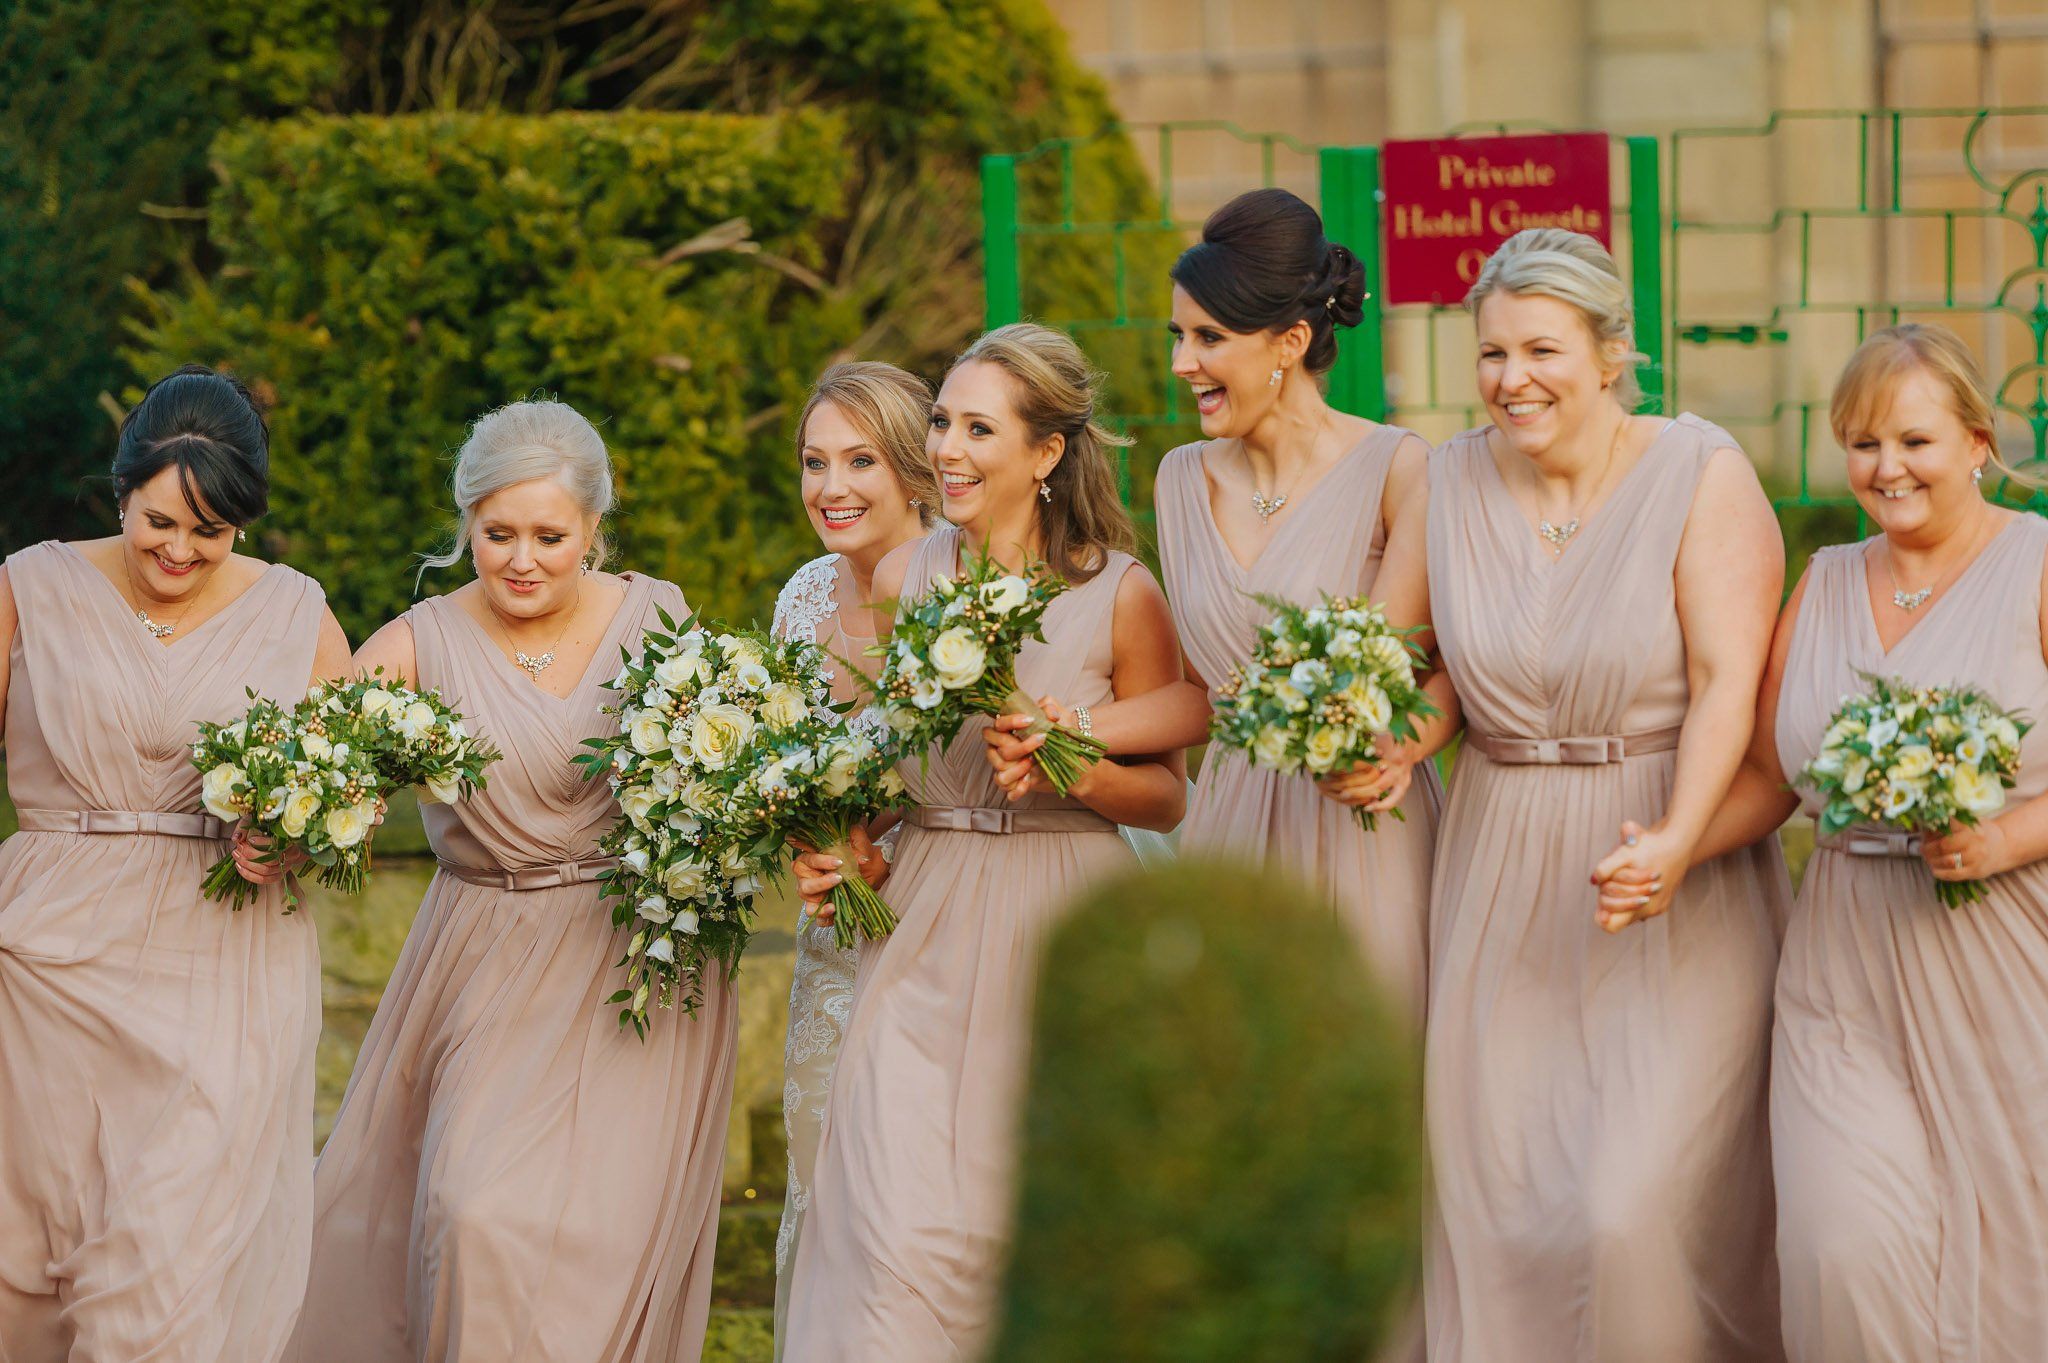 coombe abbey wedding coventry 74 - Coombe Abbey wedding in Coventry, Warwickshire - Sam + Matt